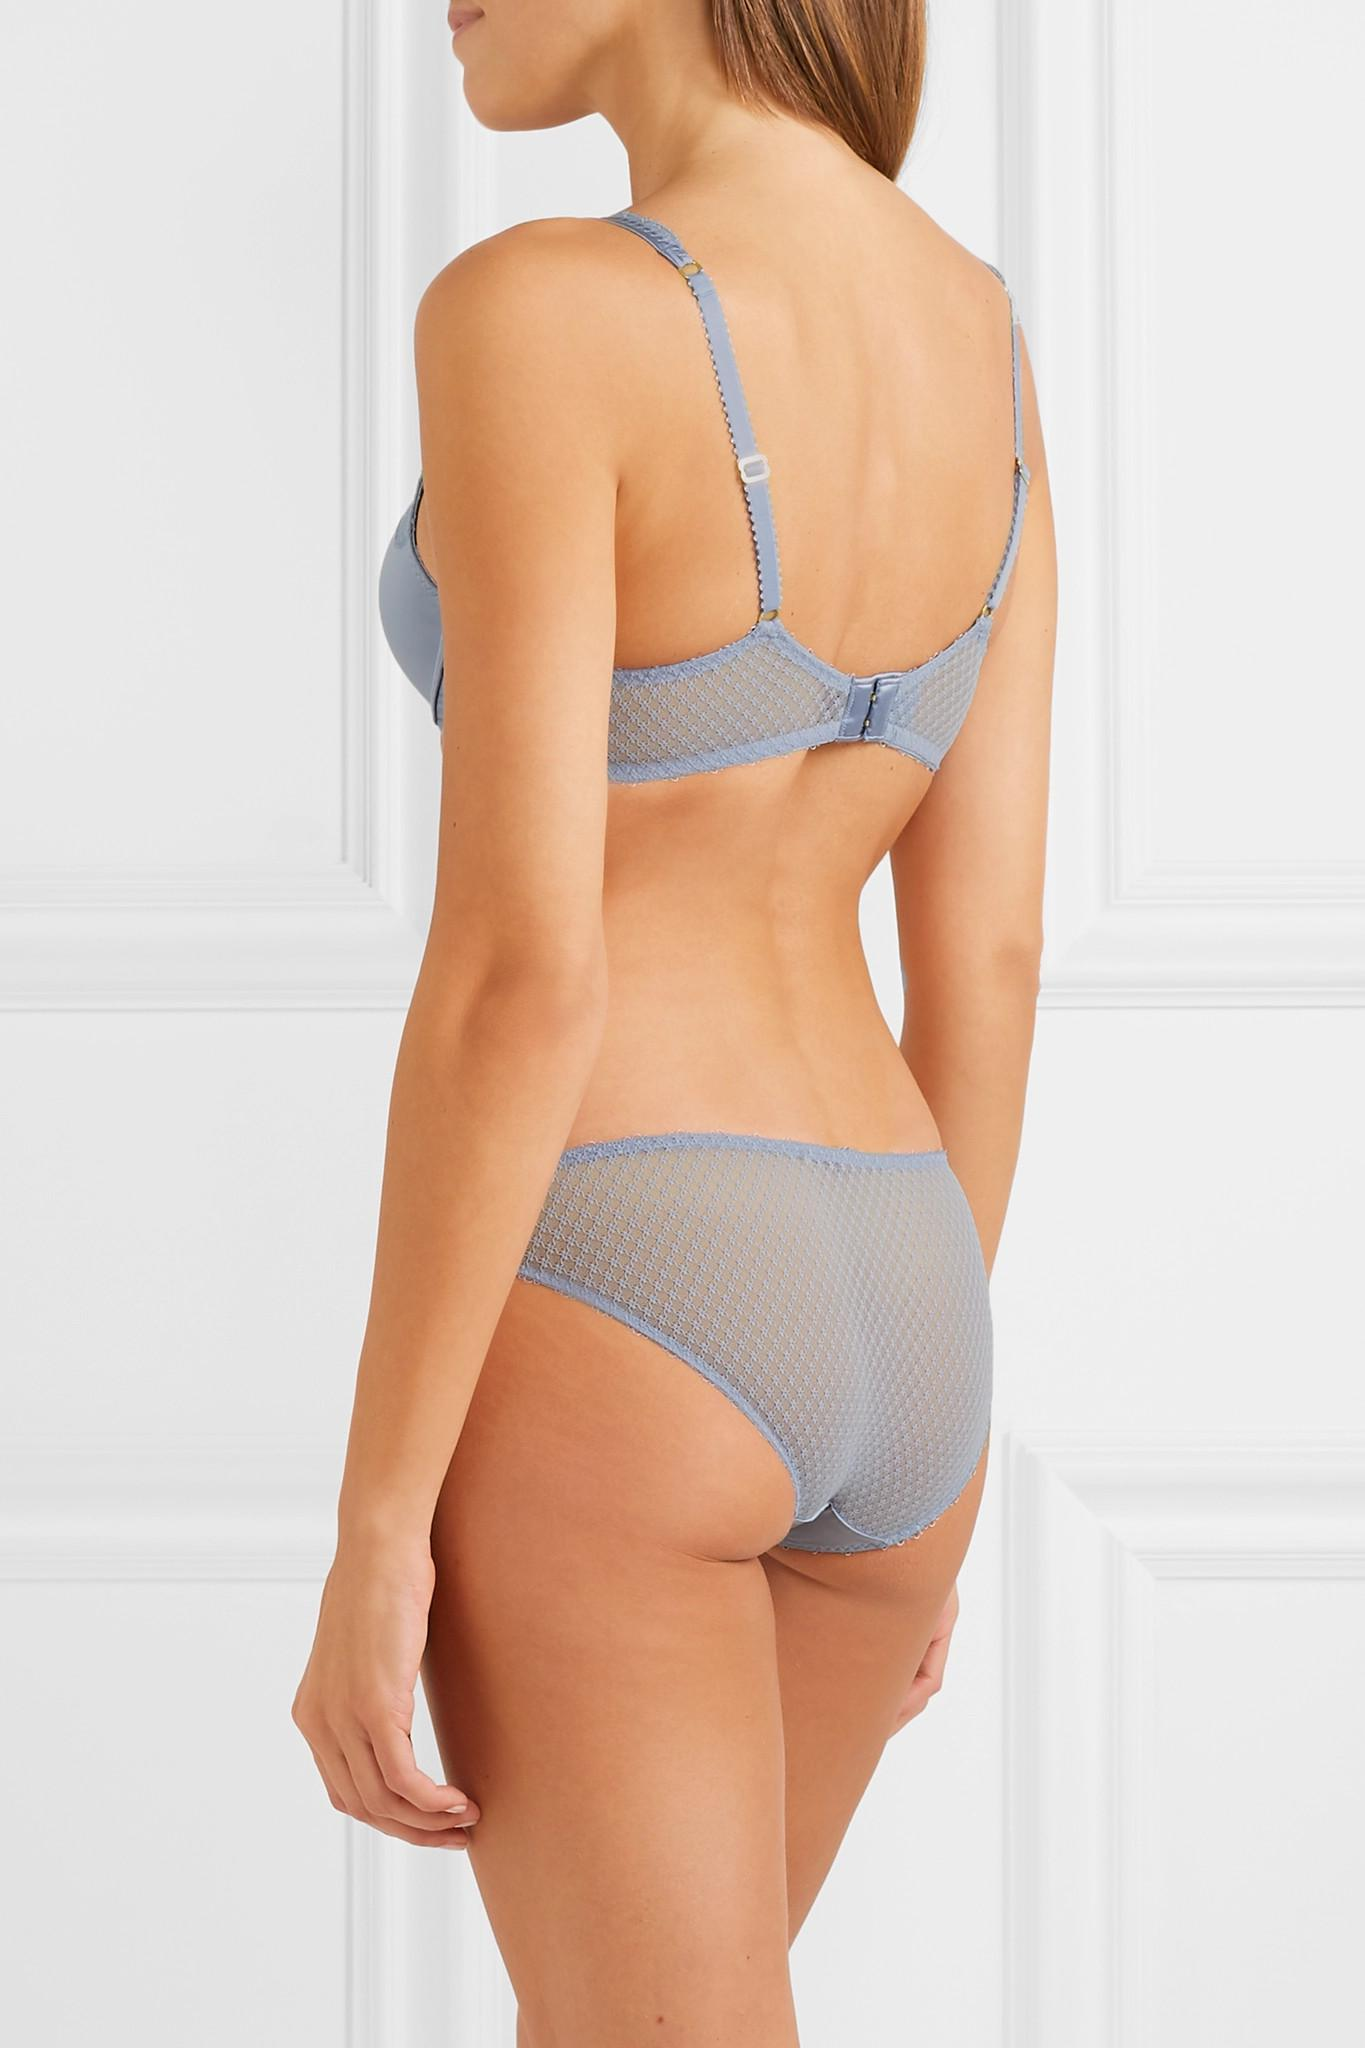 Top Quality Online Eloise Enchanting Lace-trimmed Stretch-satin And Mesh Briefs - Sky blue Stella McCartney Cheap Top Quality Sale Real Cheap Sale Great Deals Free Shipping Sale sEEUsMoL